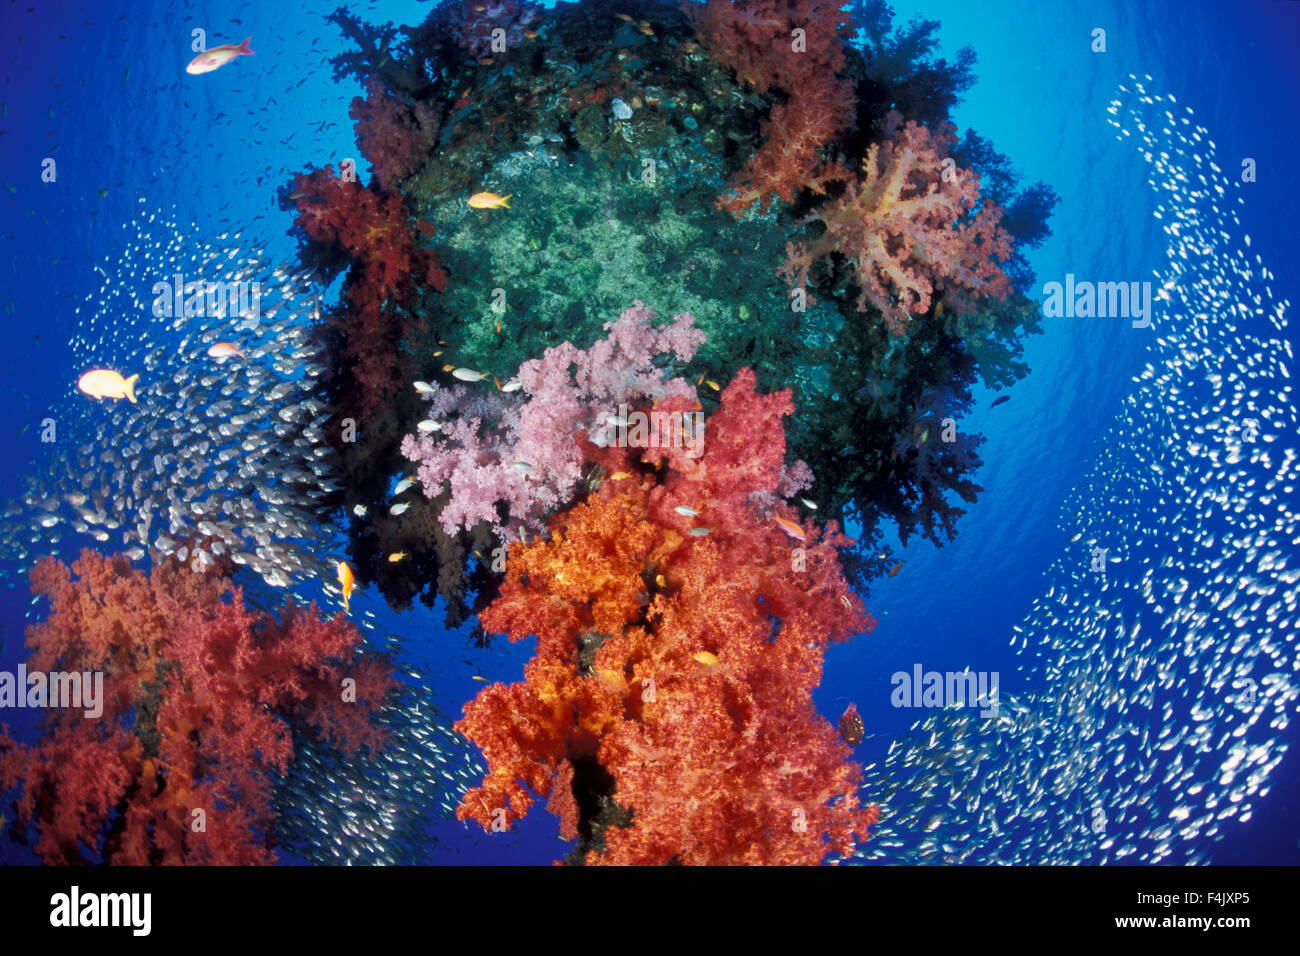 Soft coral on artificial reef - Stock Image